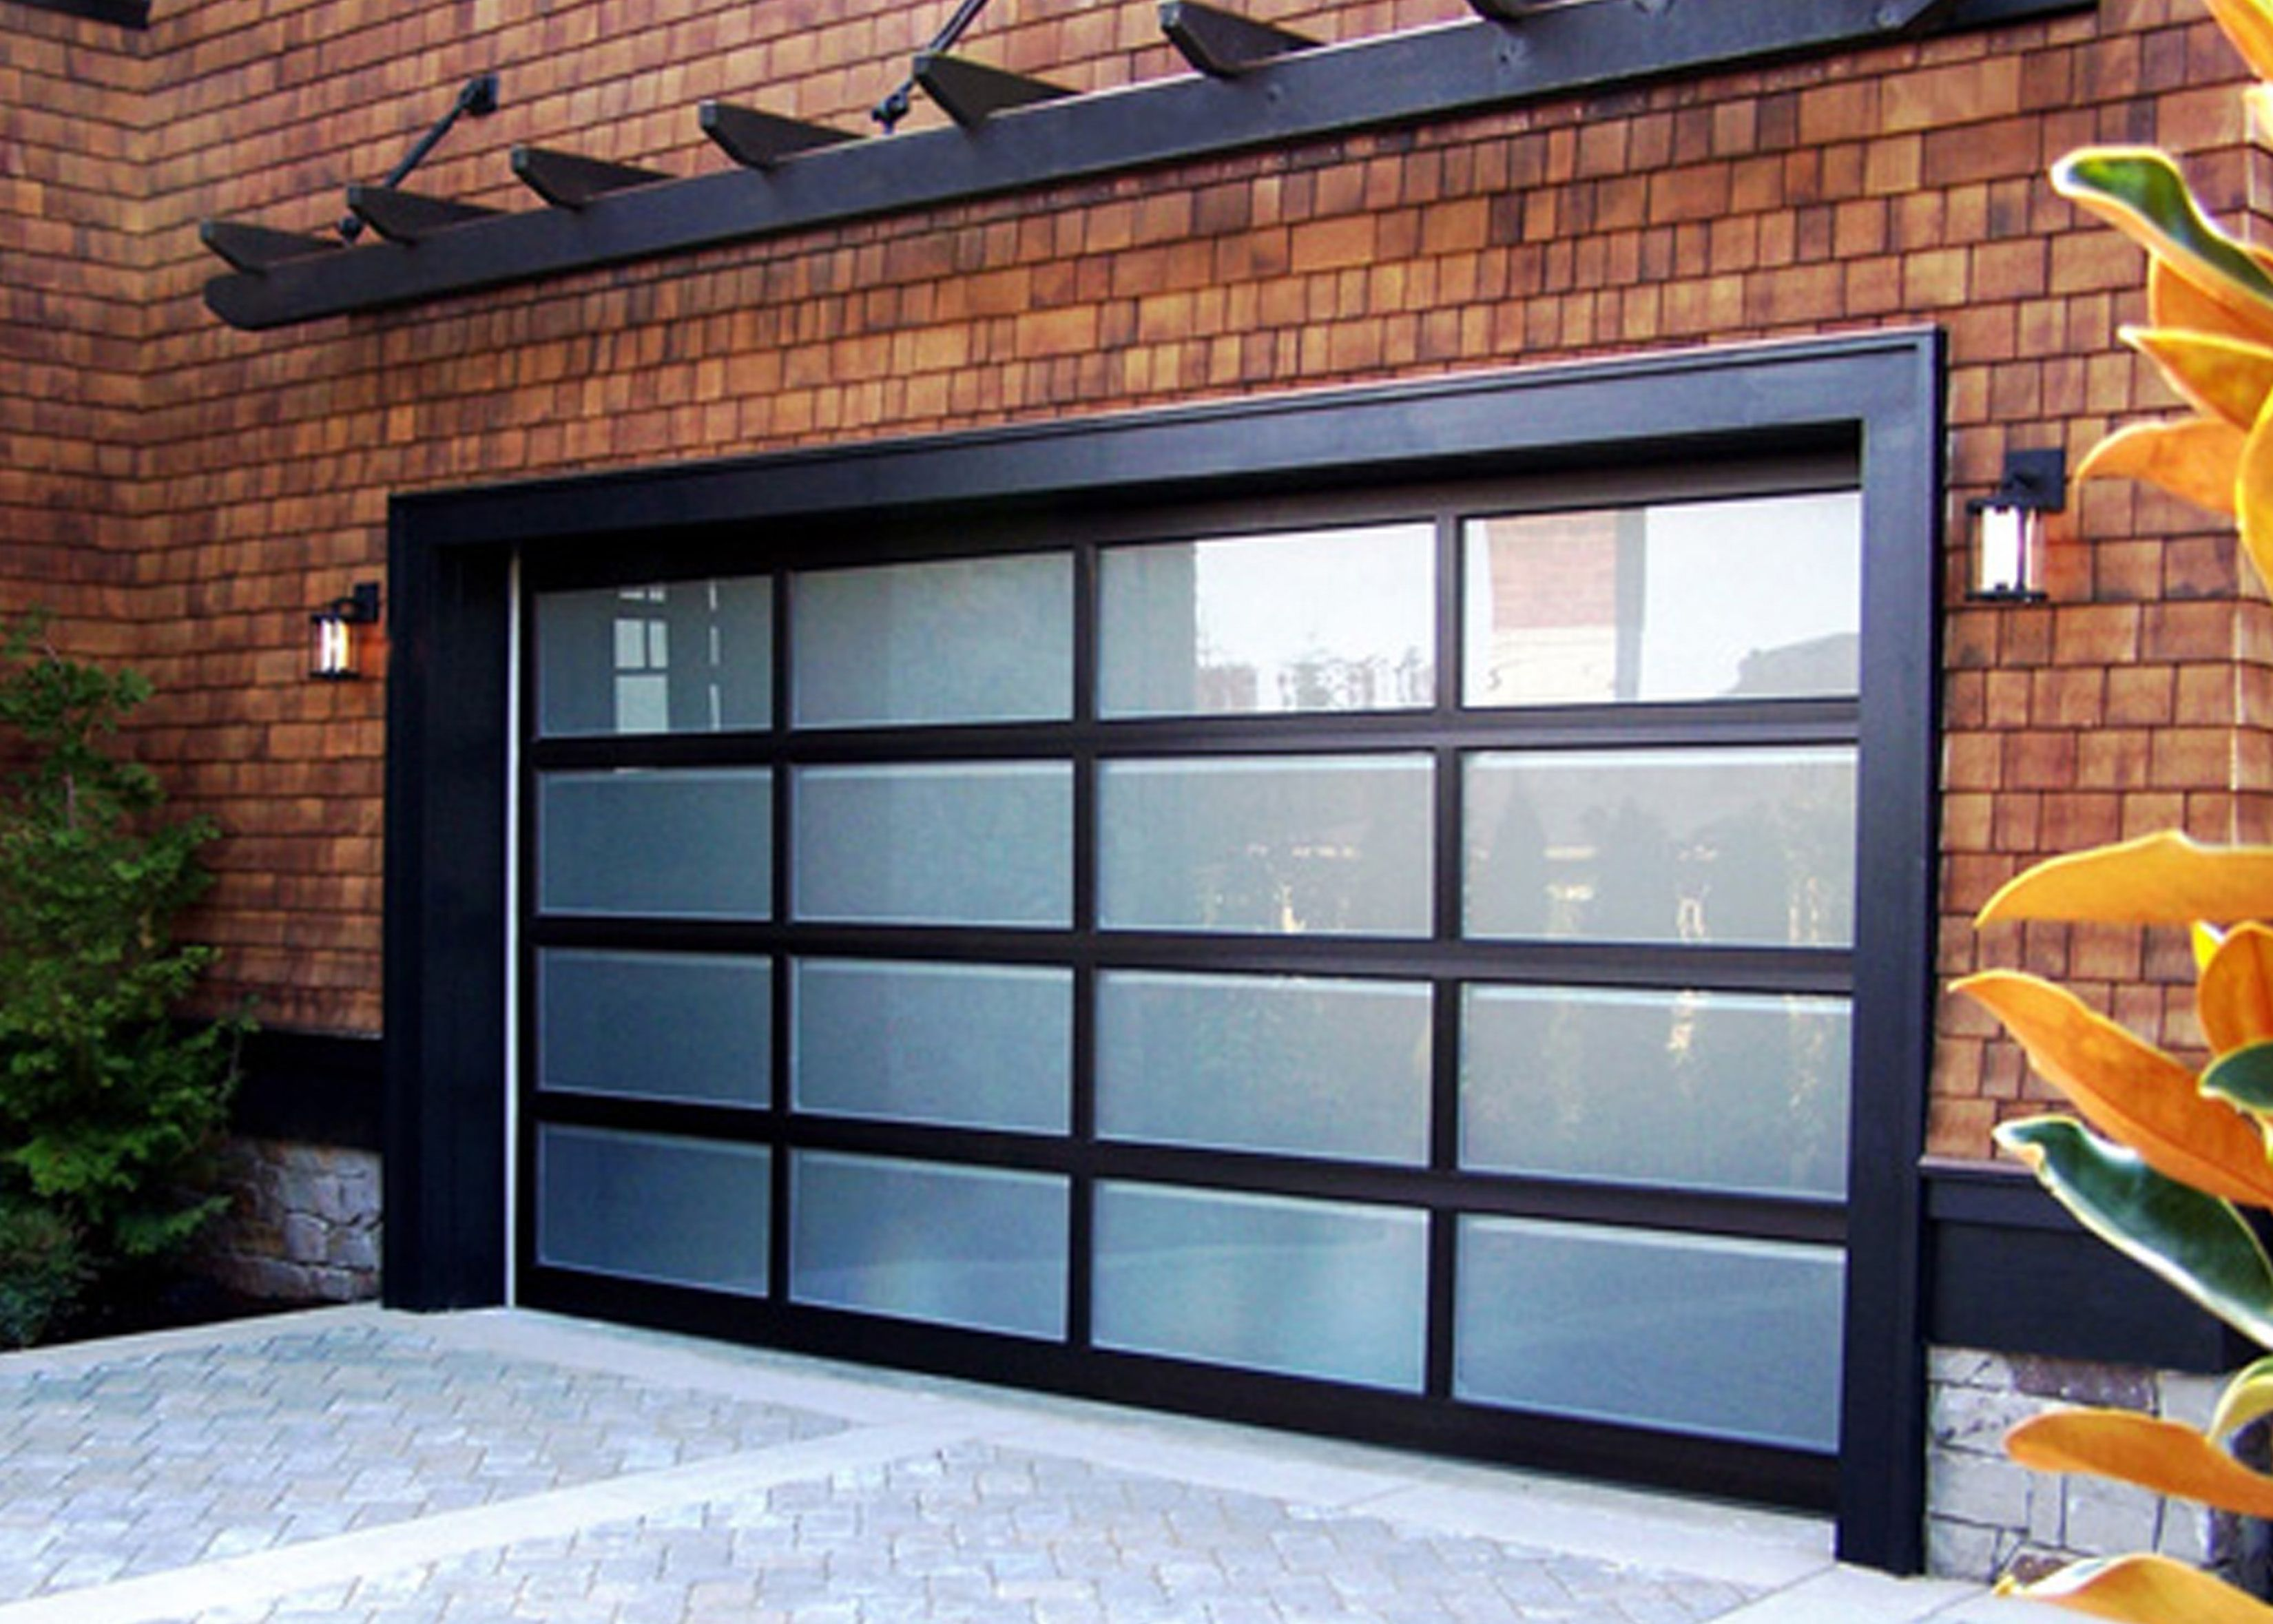 door used glass designs sectional windows two view room in doors gallery modern with garage living many